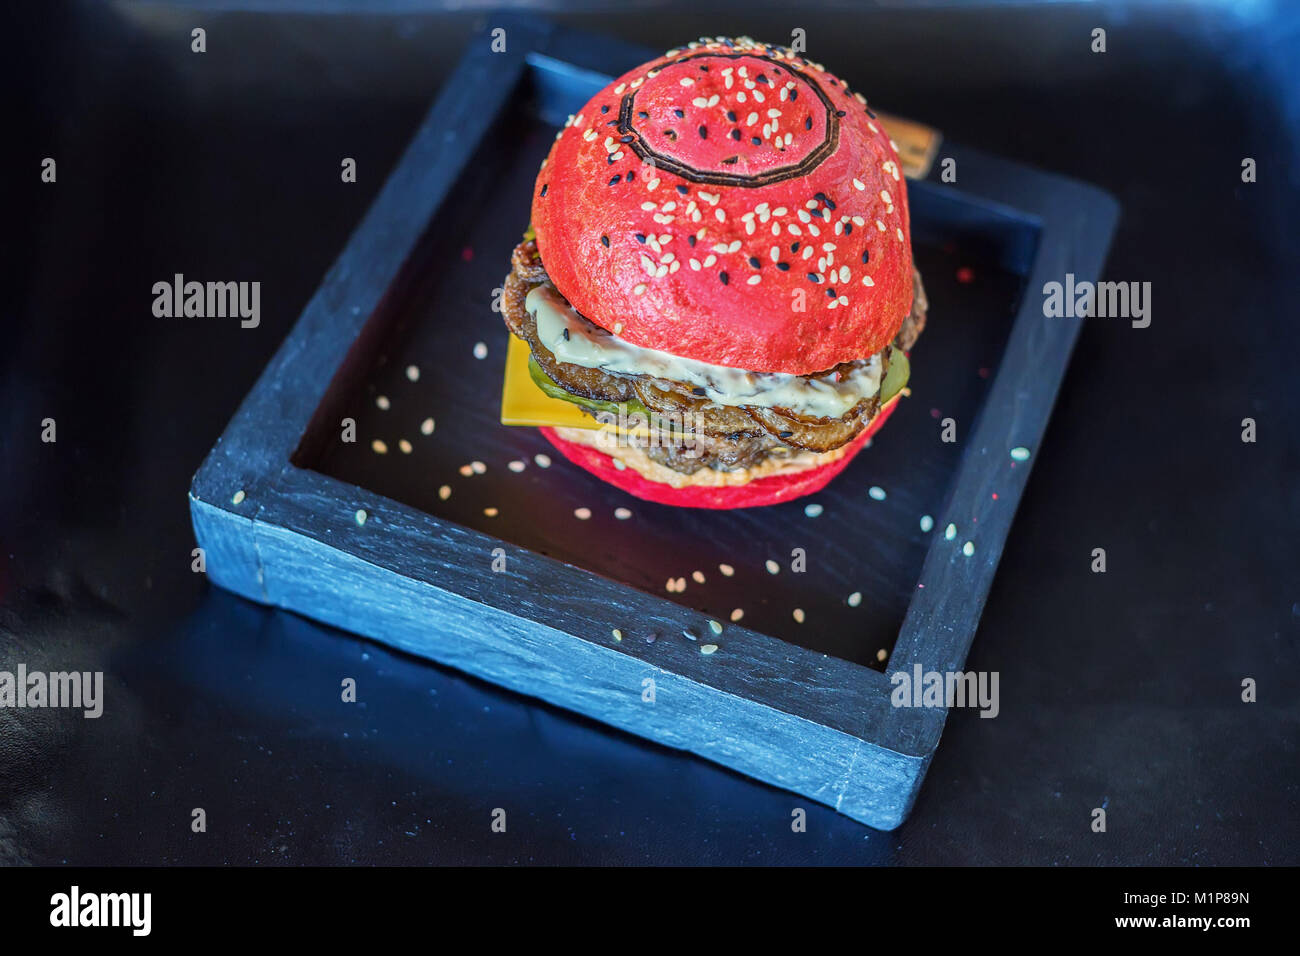 Red burger on a wooden board - Stock Image